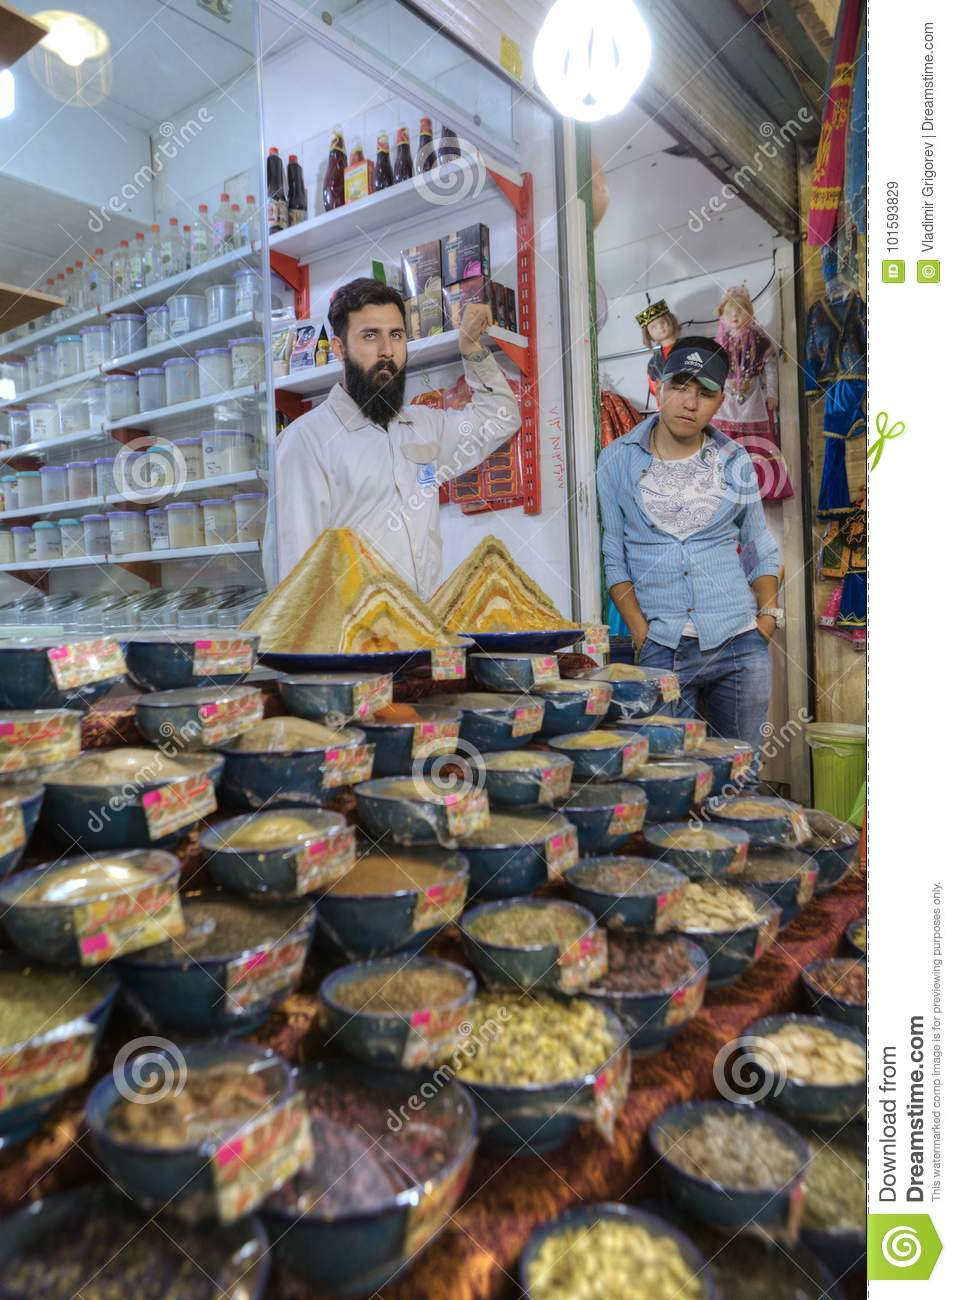 Iranian sweets traders stand near showcase of their store, Shiraz.